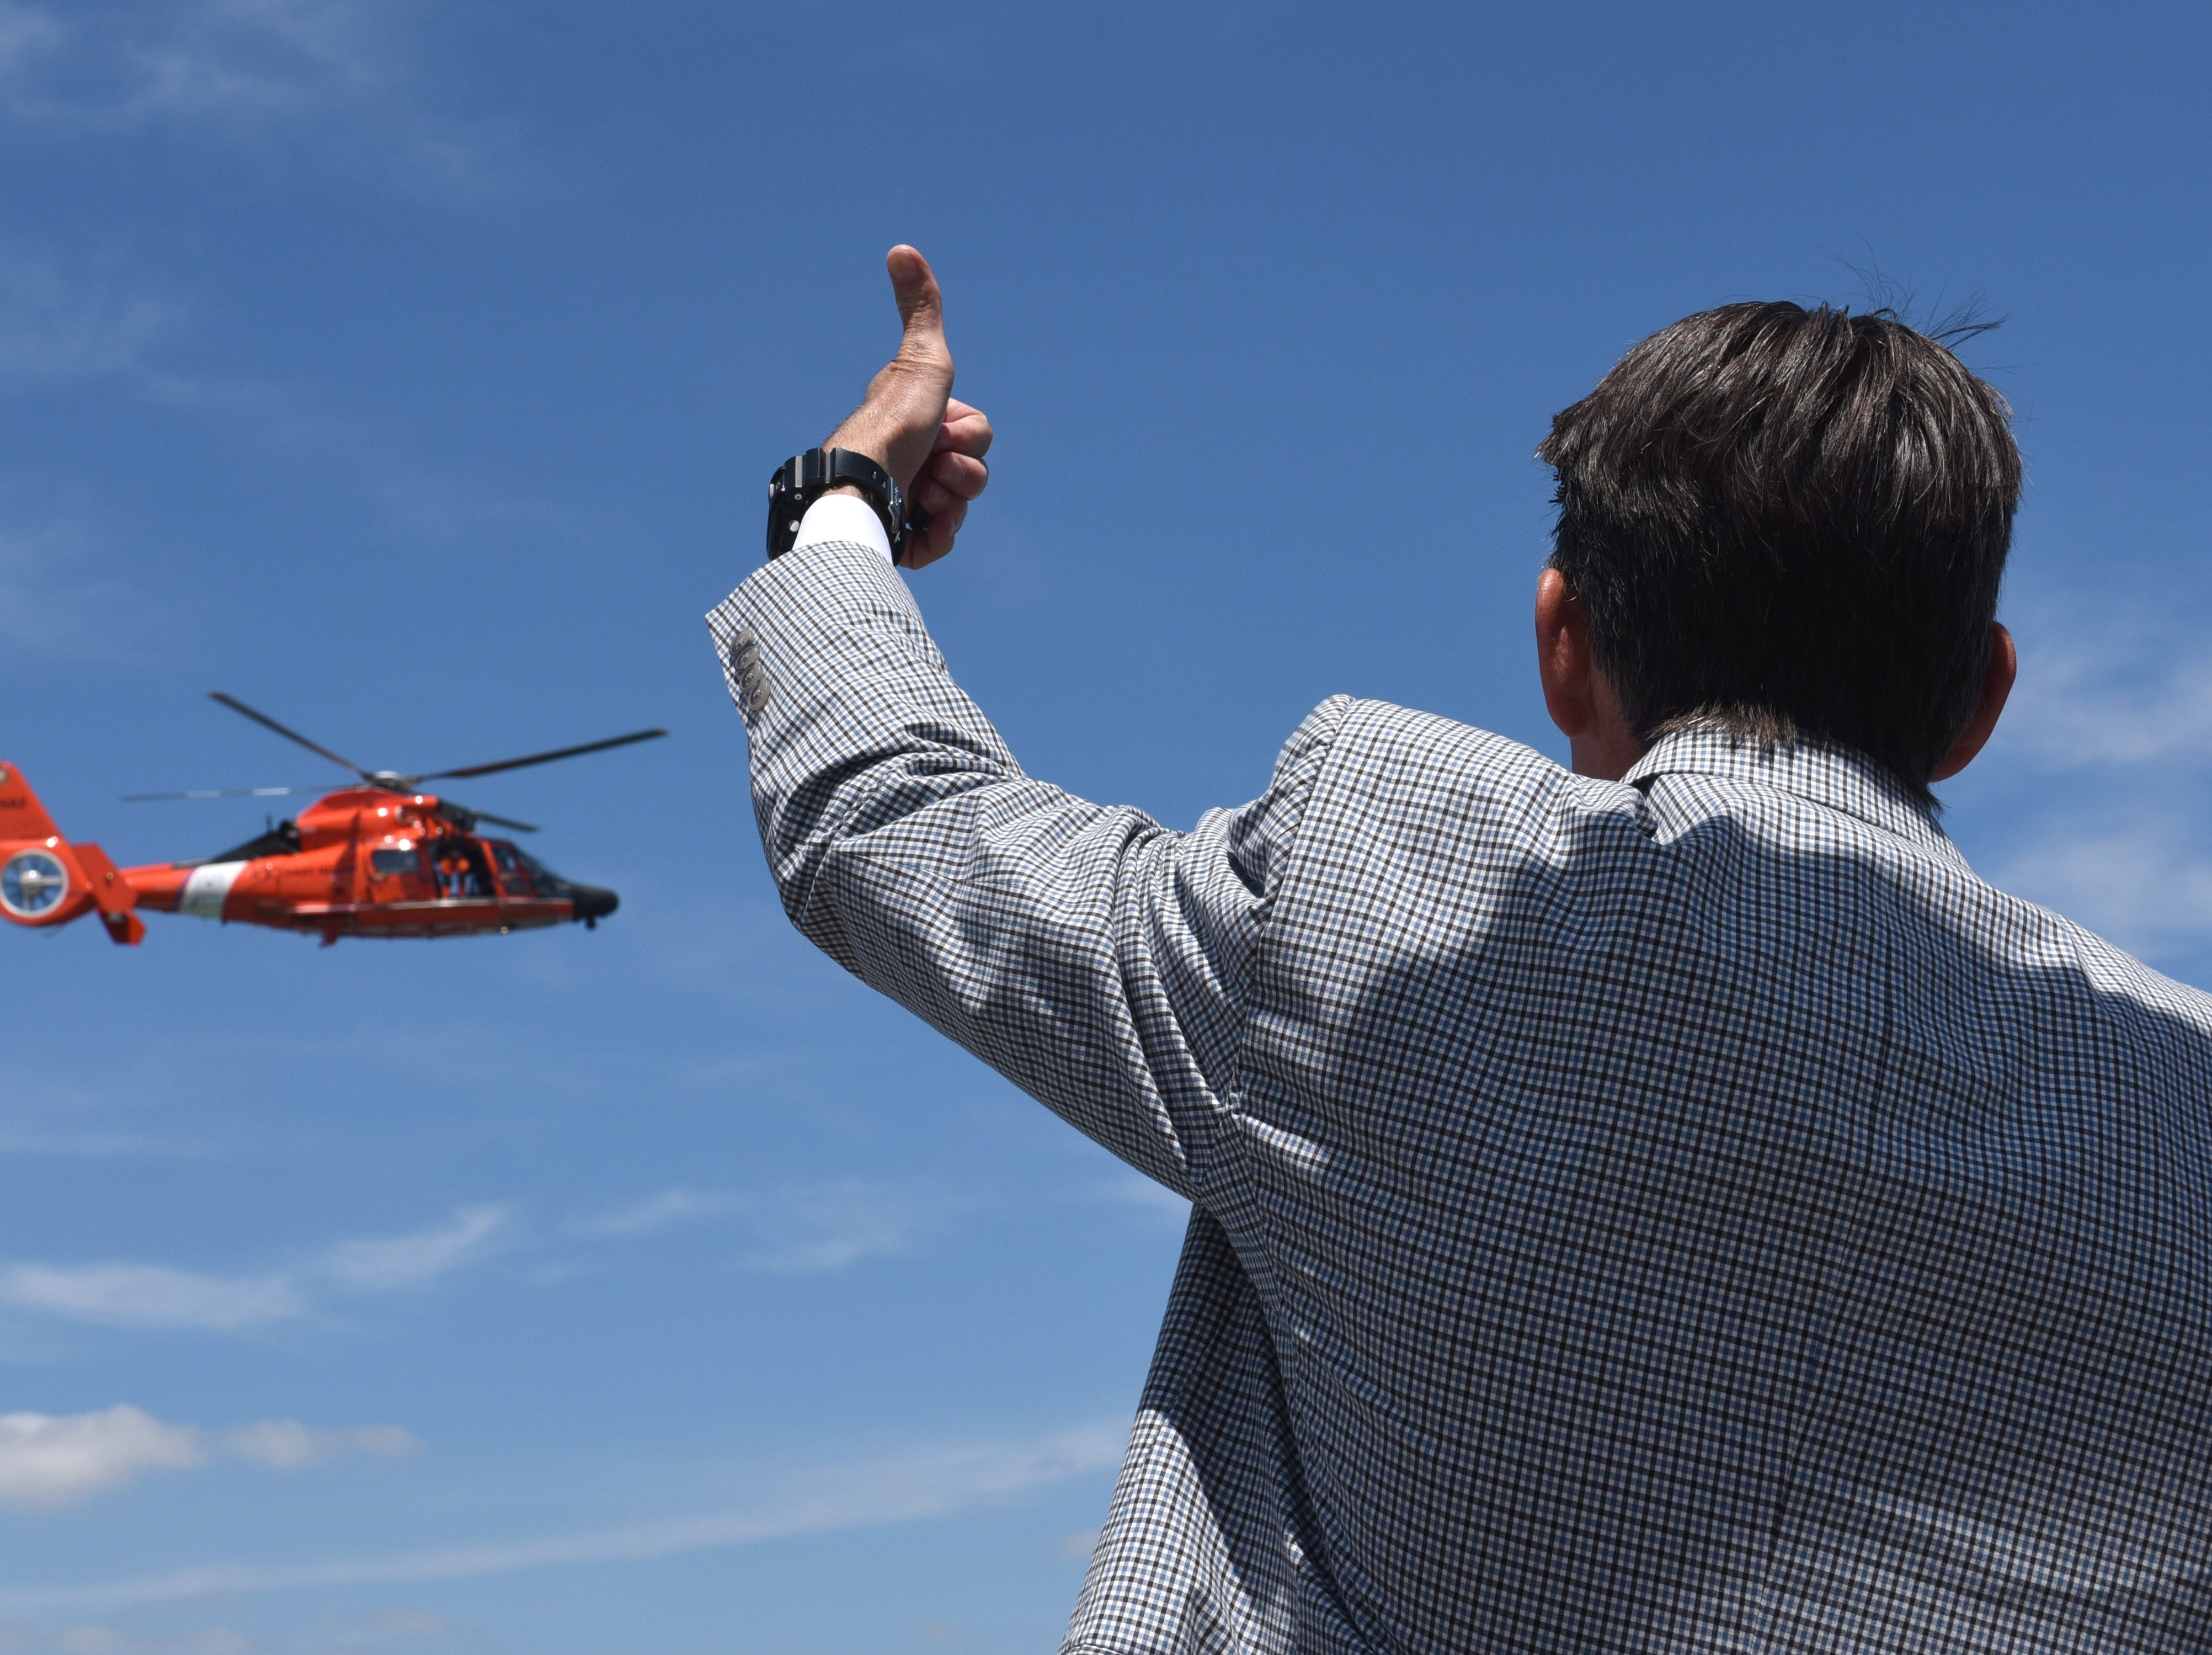 Mark Hackel, Macomb County executive, gives a thumbs up to a  U.S. Coast Guard helicopter that performed a live rescue at the MacRay Harbor Marina in Harrison Township on June 6, 2018. Hackel, spoke along the shore of Lake St. Clair to share accomplishments, advancements and work around the regionÕs land and water resources.